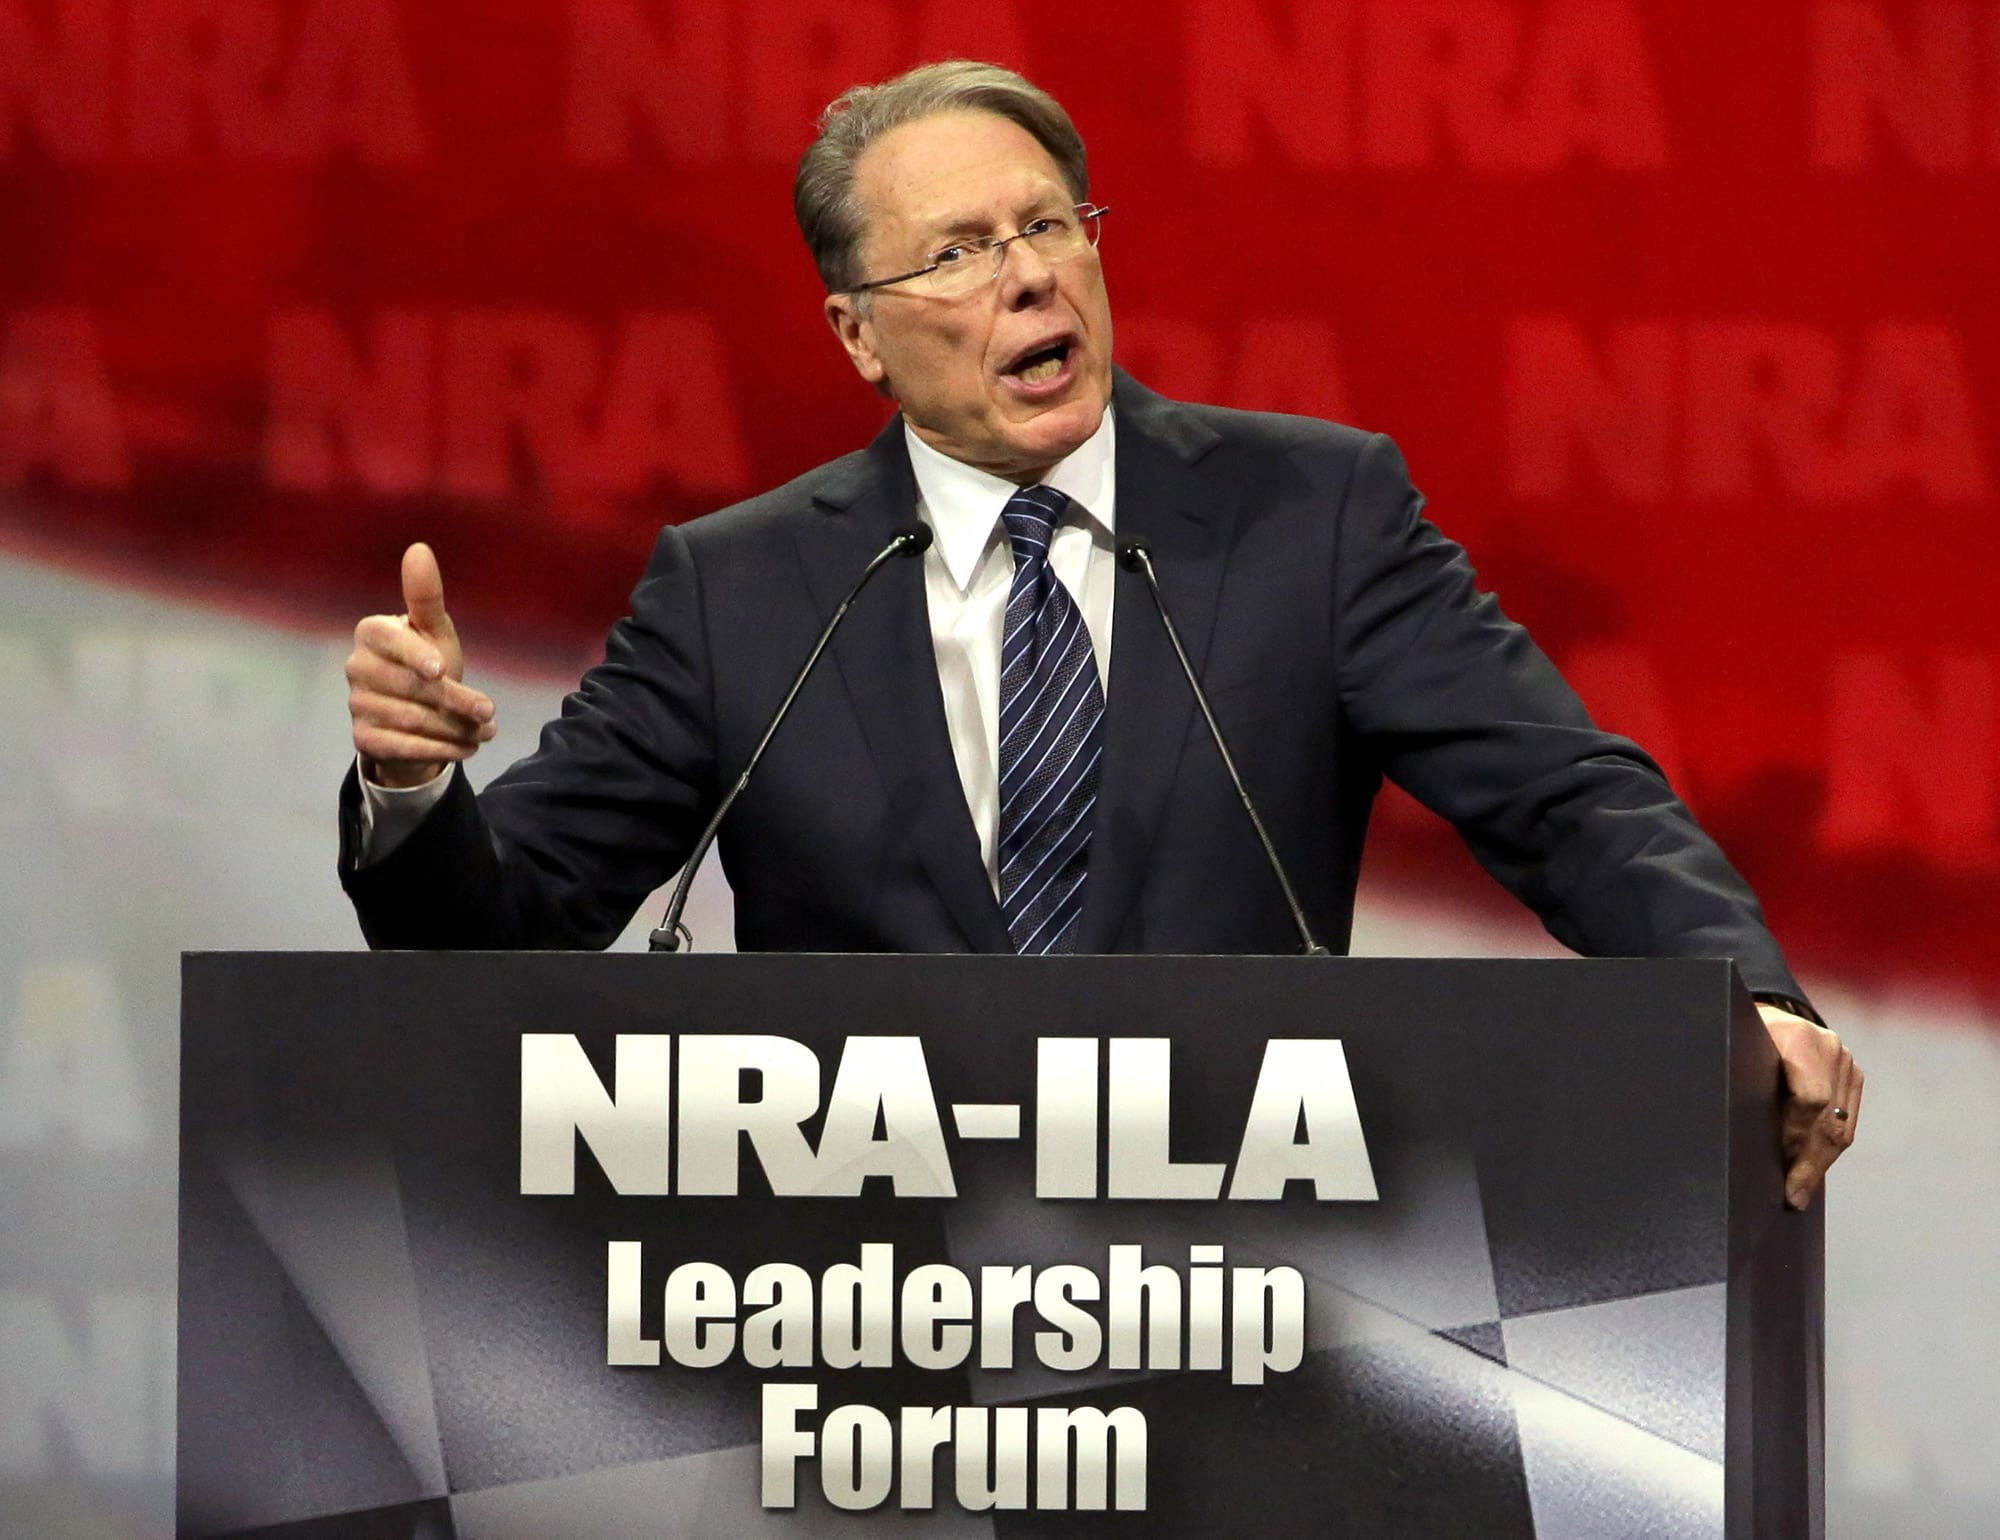 Inside the NRA's scandals and financial troubles